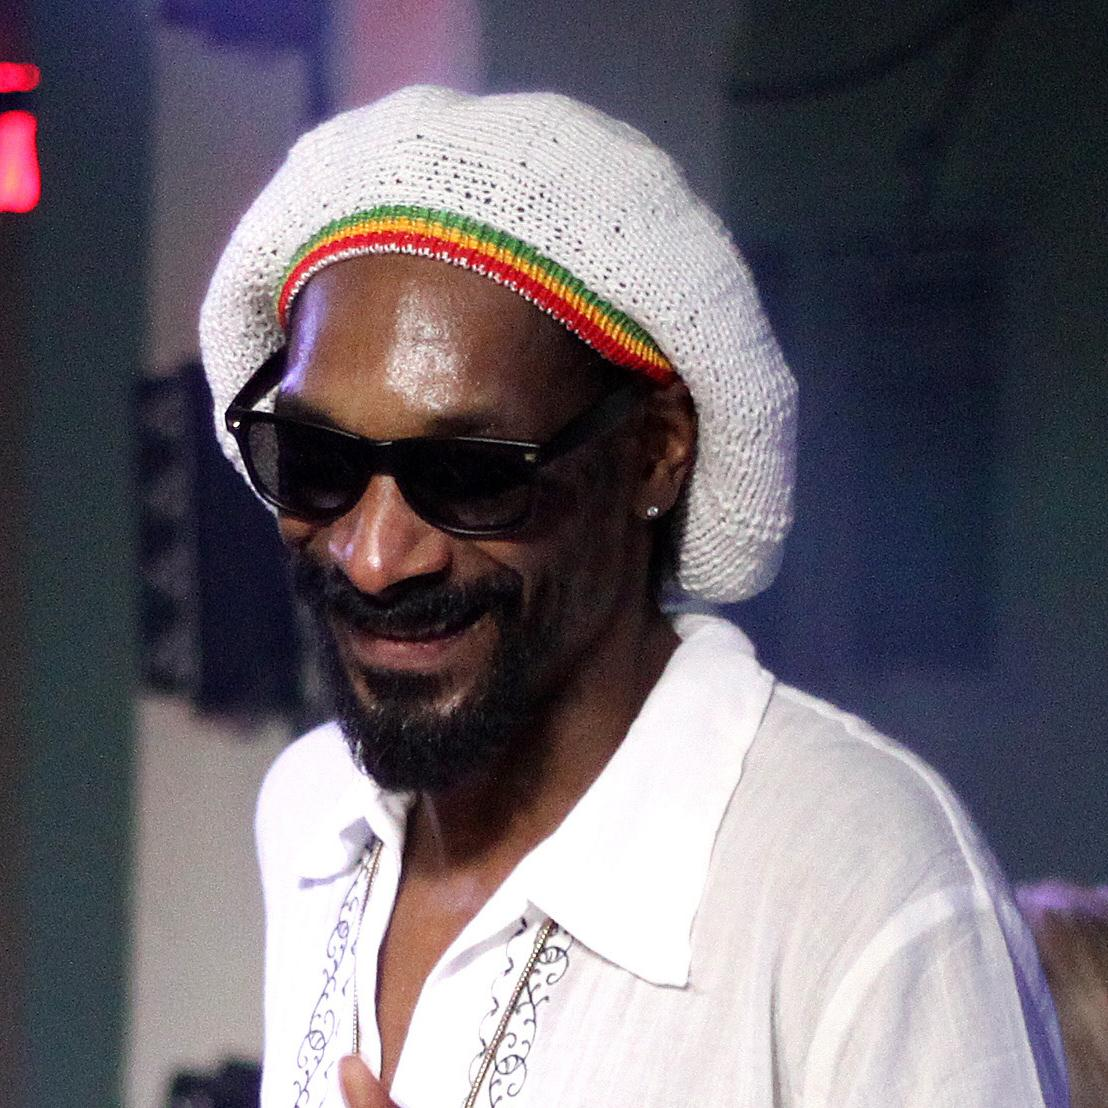 Snoop Dogg Bio, Net Worth, Facts